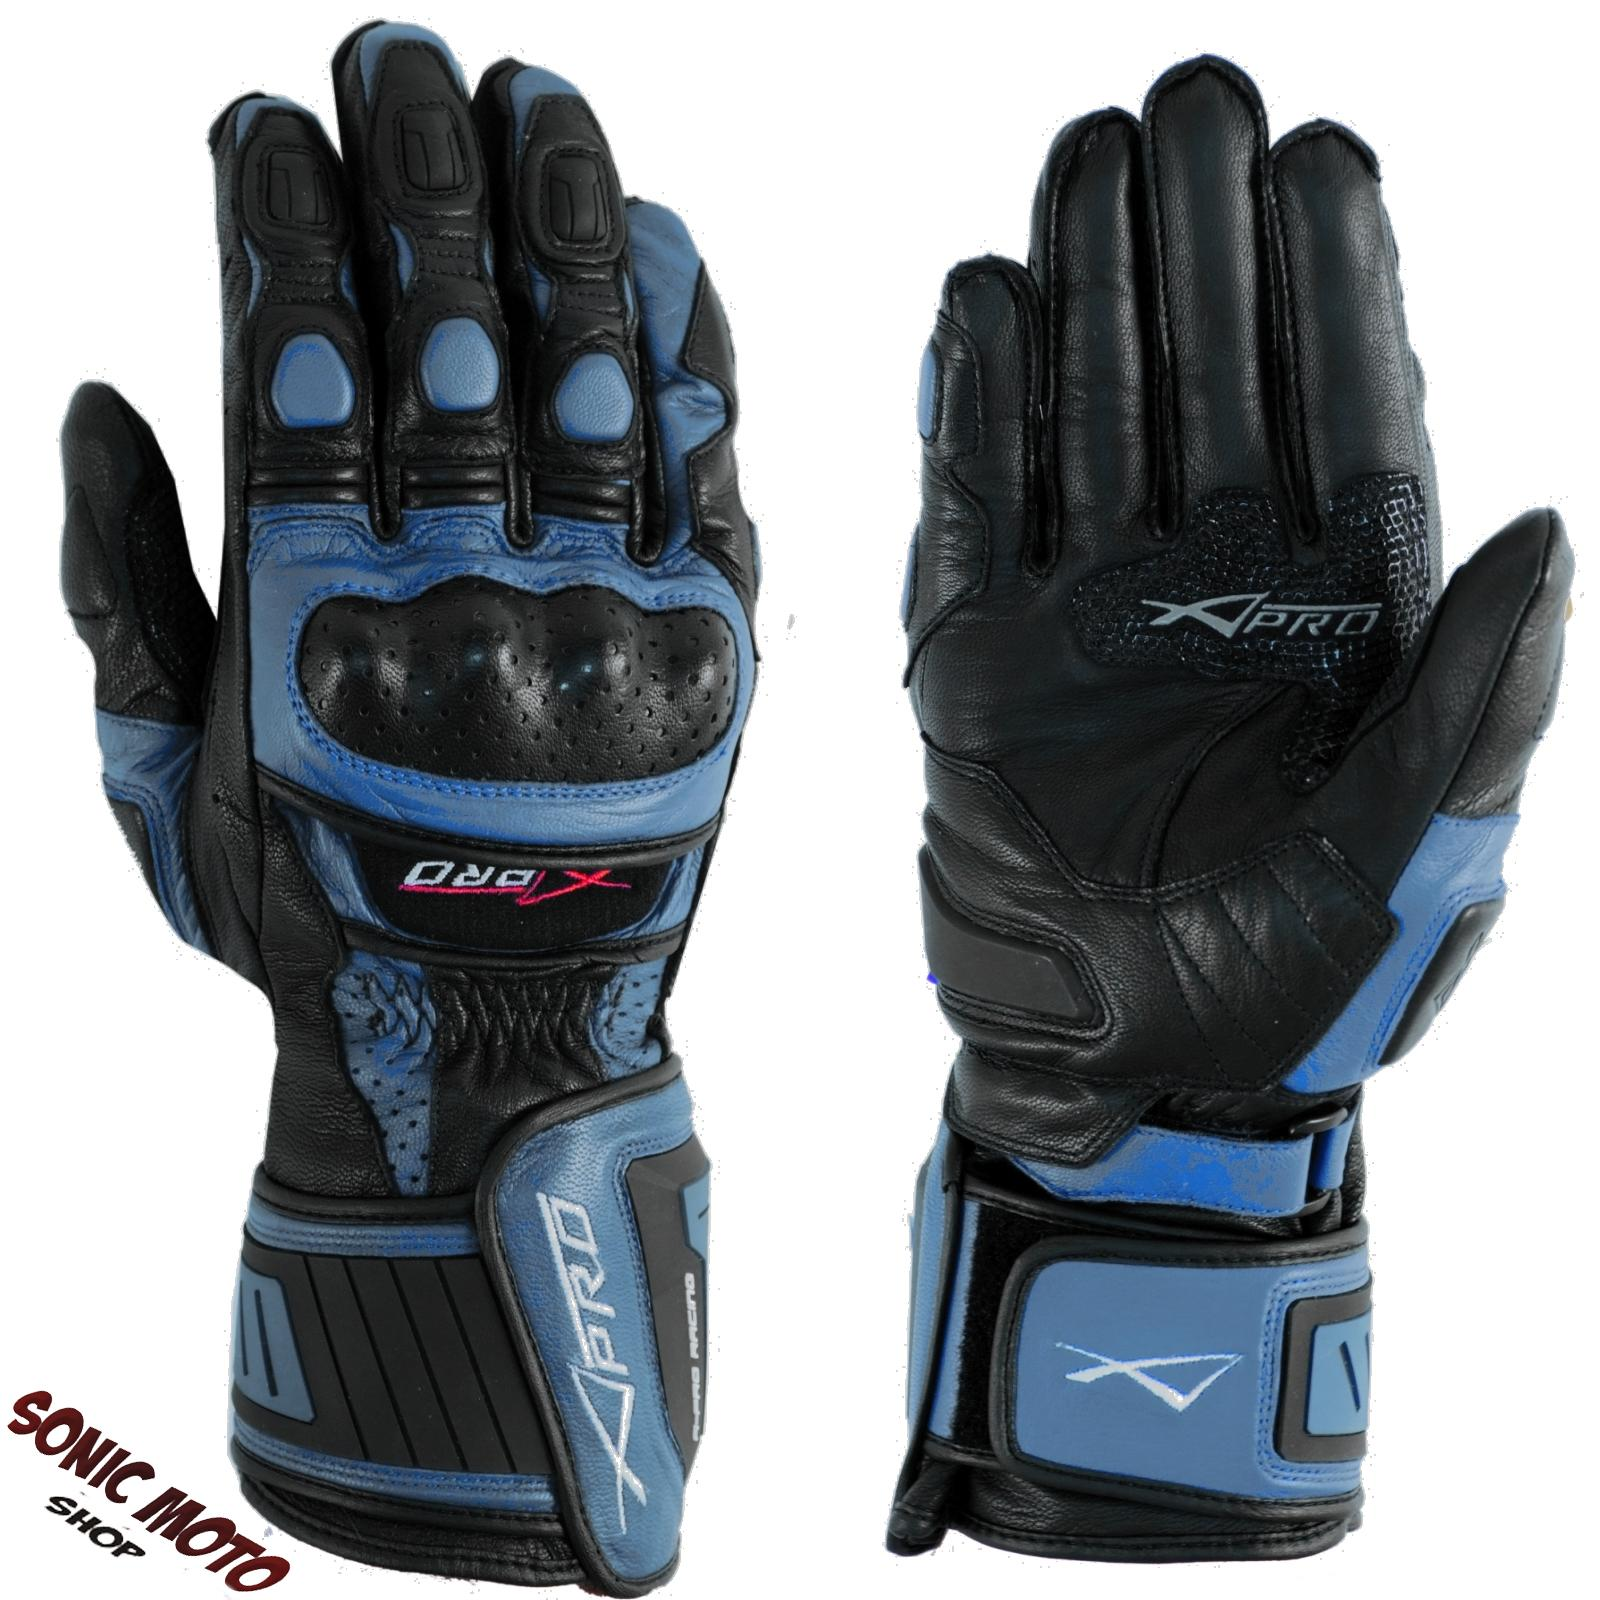 Protective-Racing-Cruiser-Motorcycle-Motorbike-Quality-Gloves-A-PRO-Blue-3XL